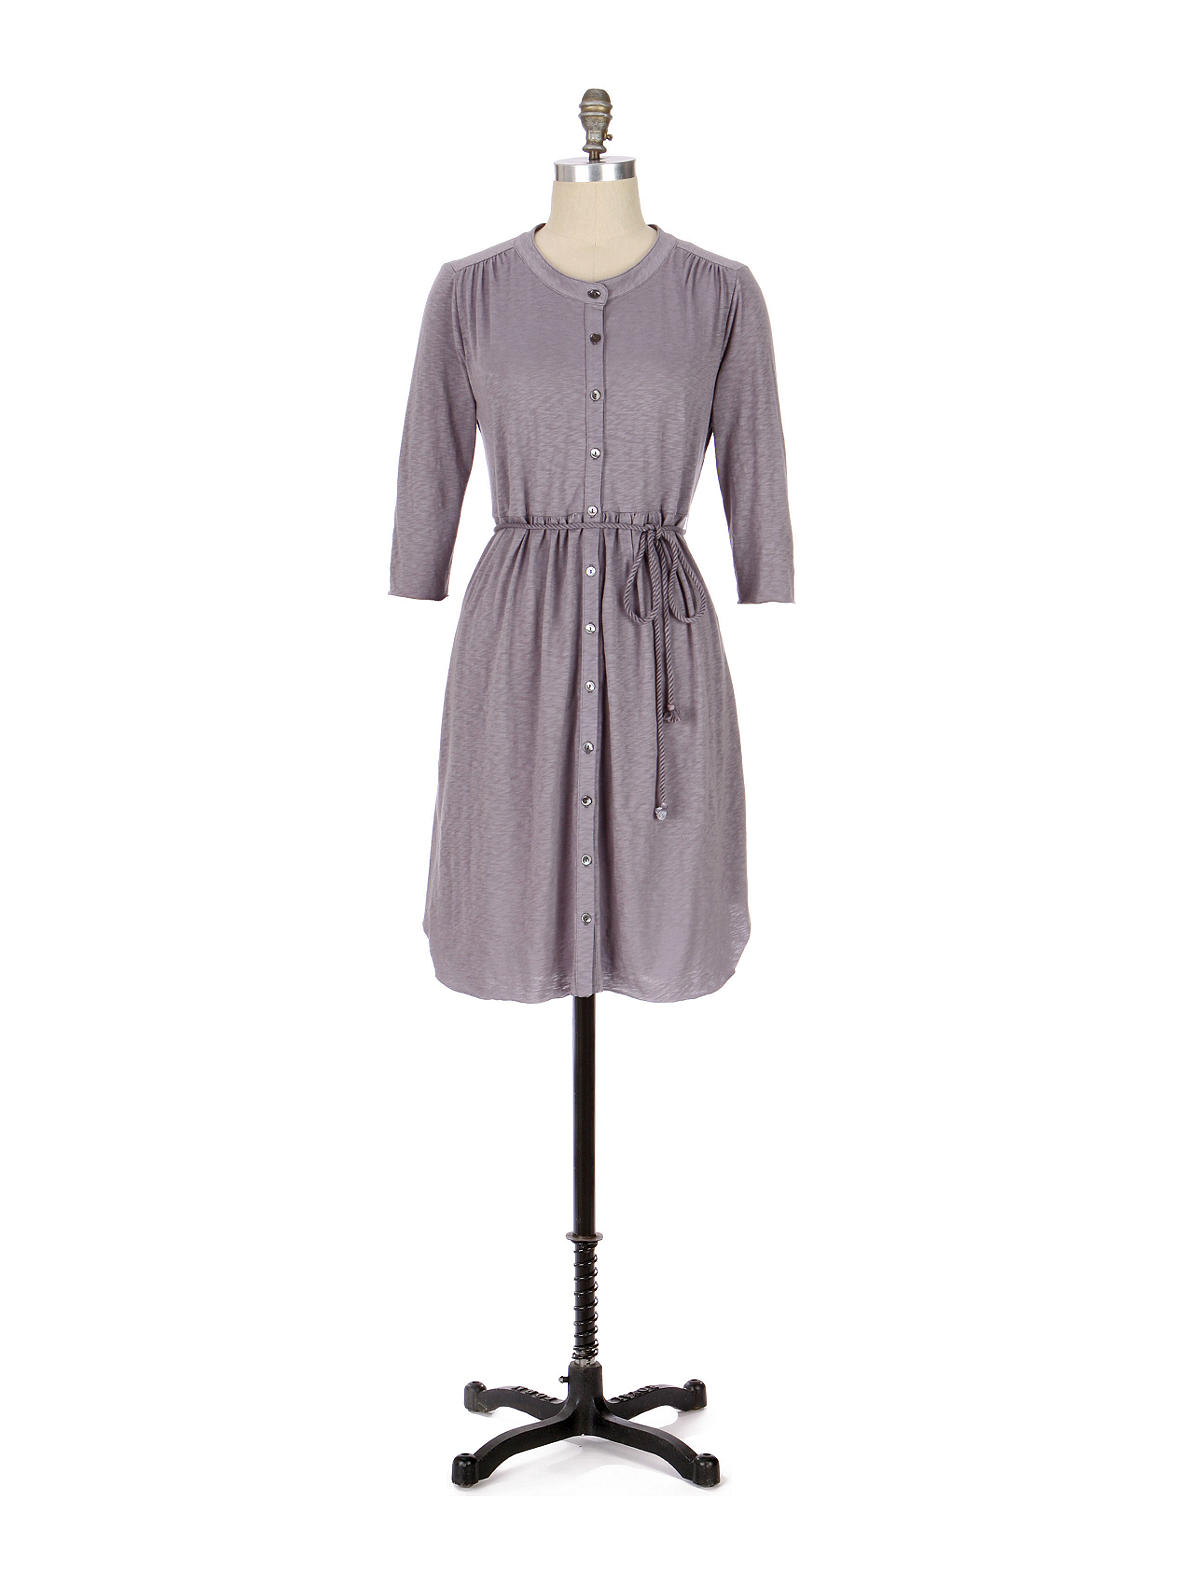 Day-In, Day-Out Dress - Anthropologie.com :  rope dress gathered slub